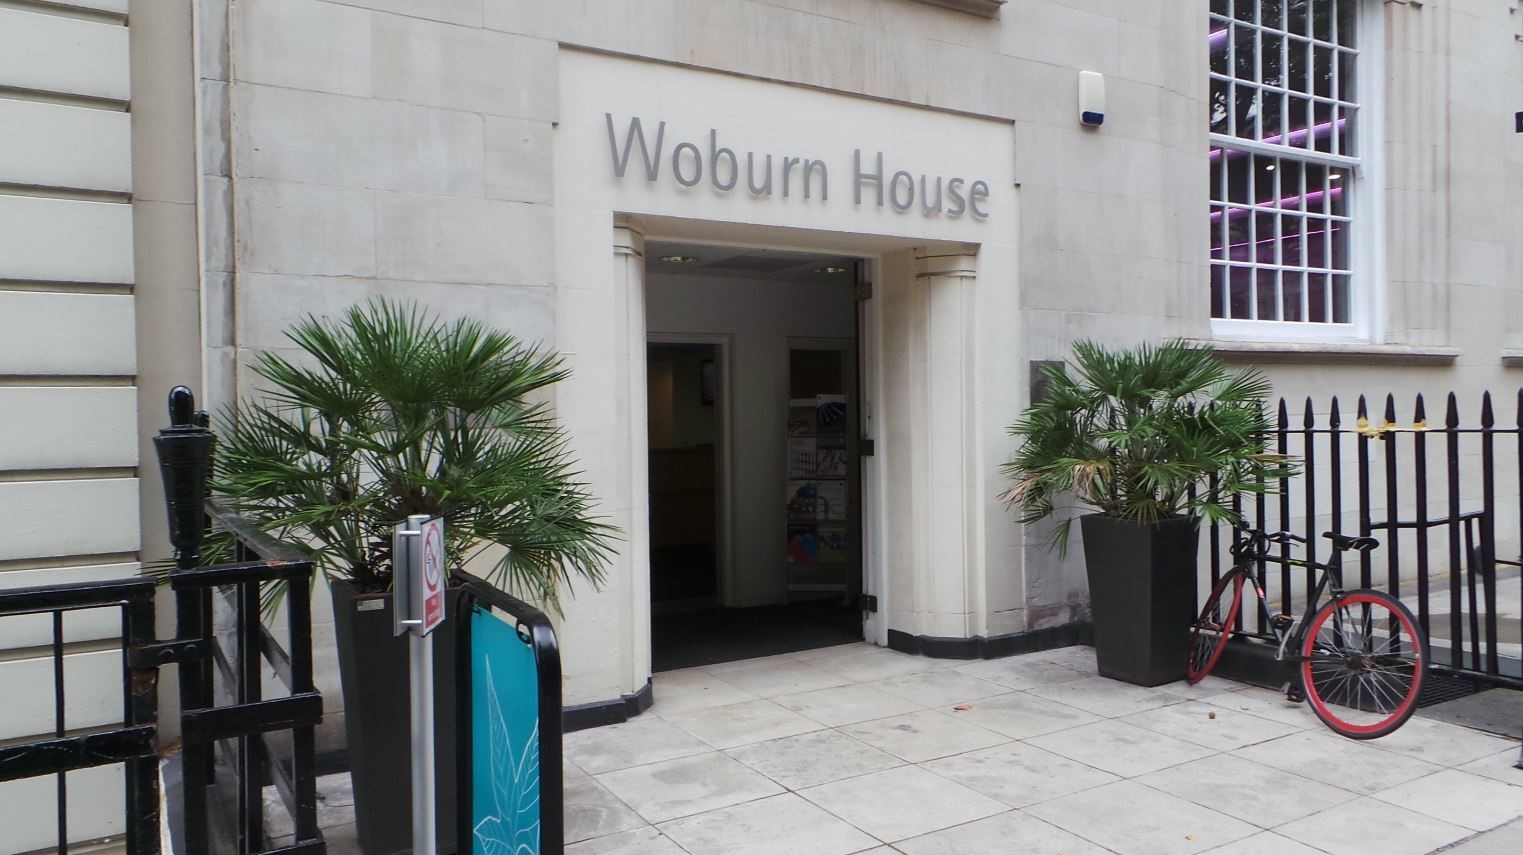 Woburn House, London